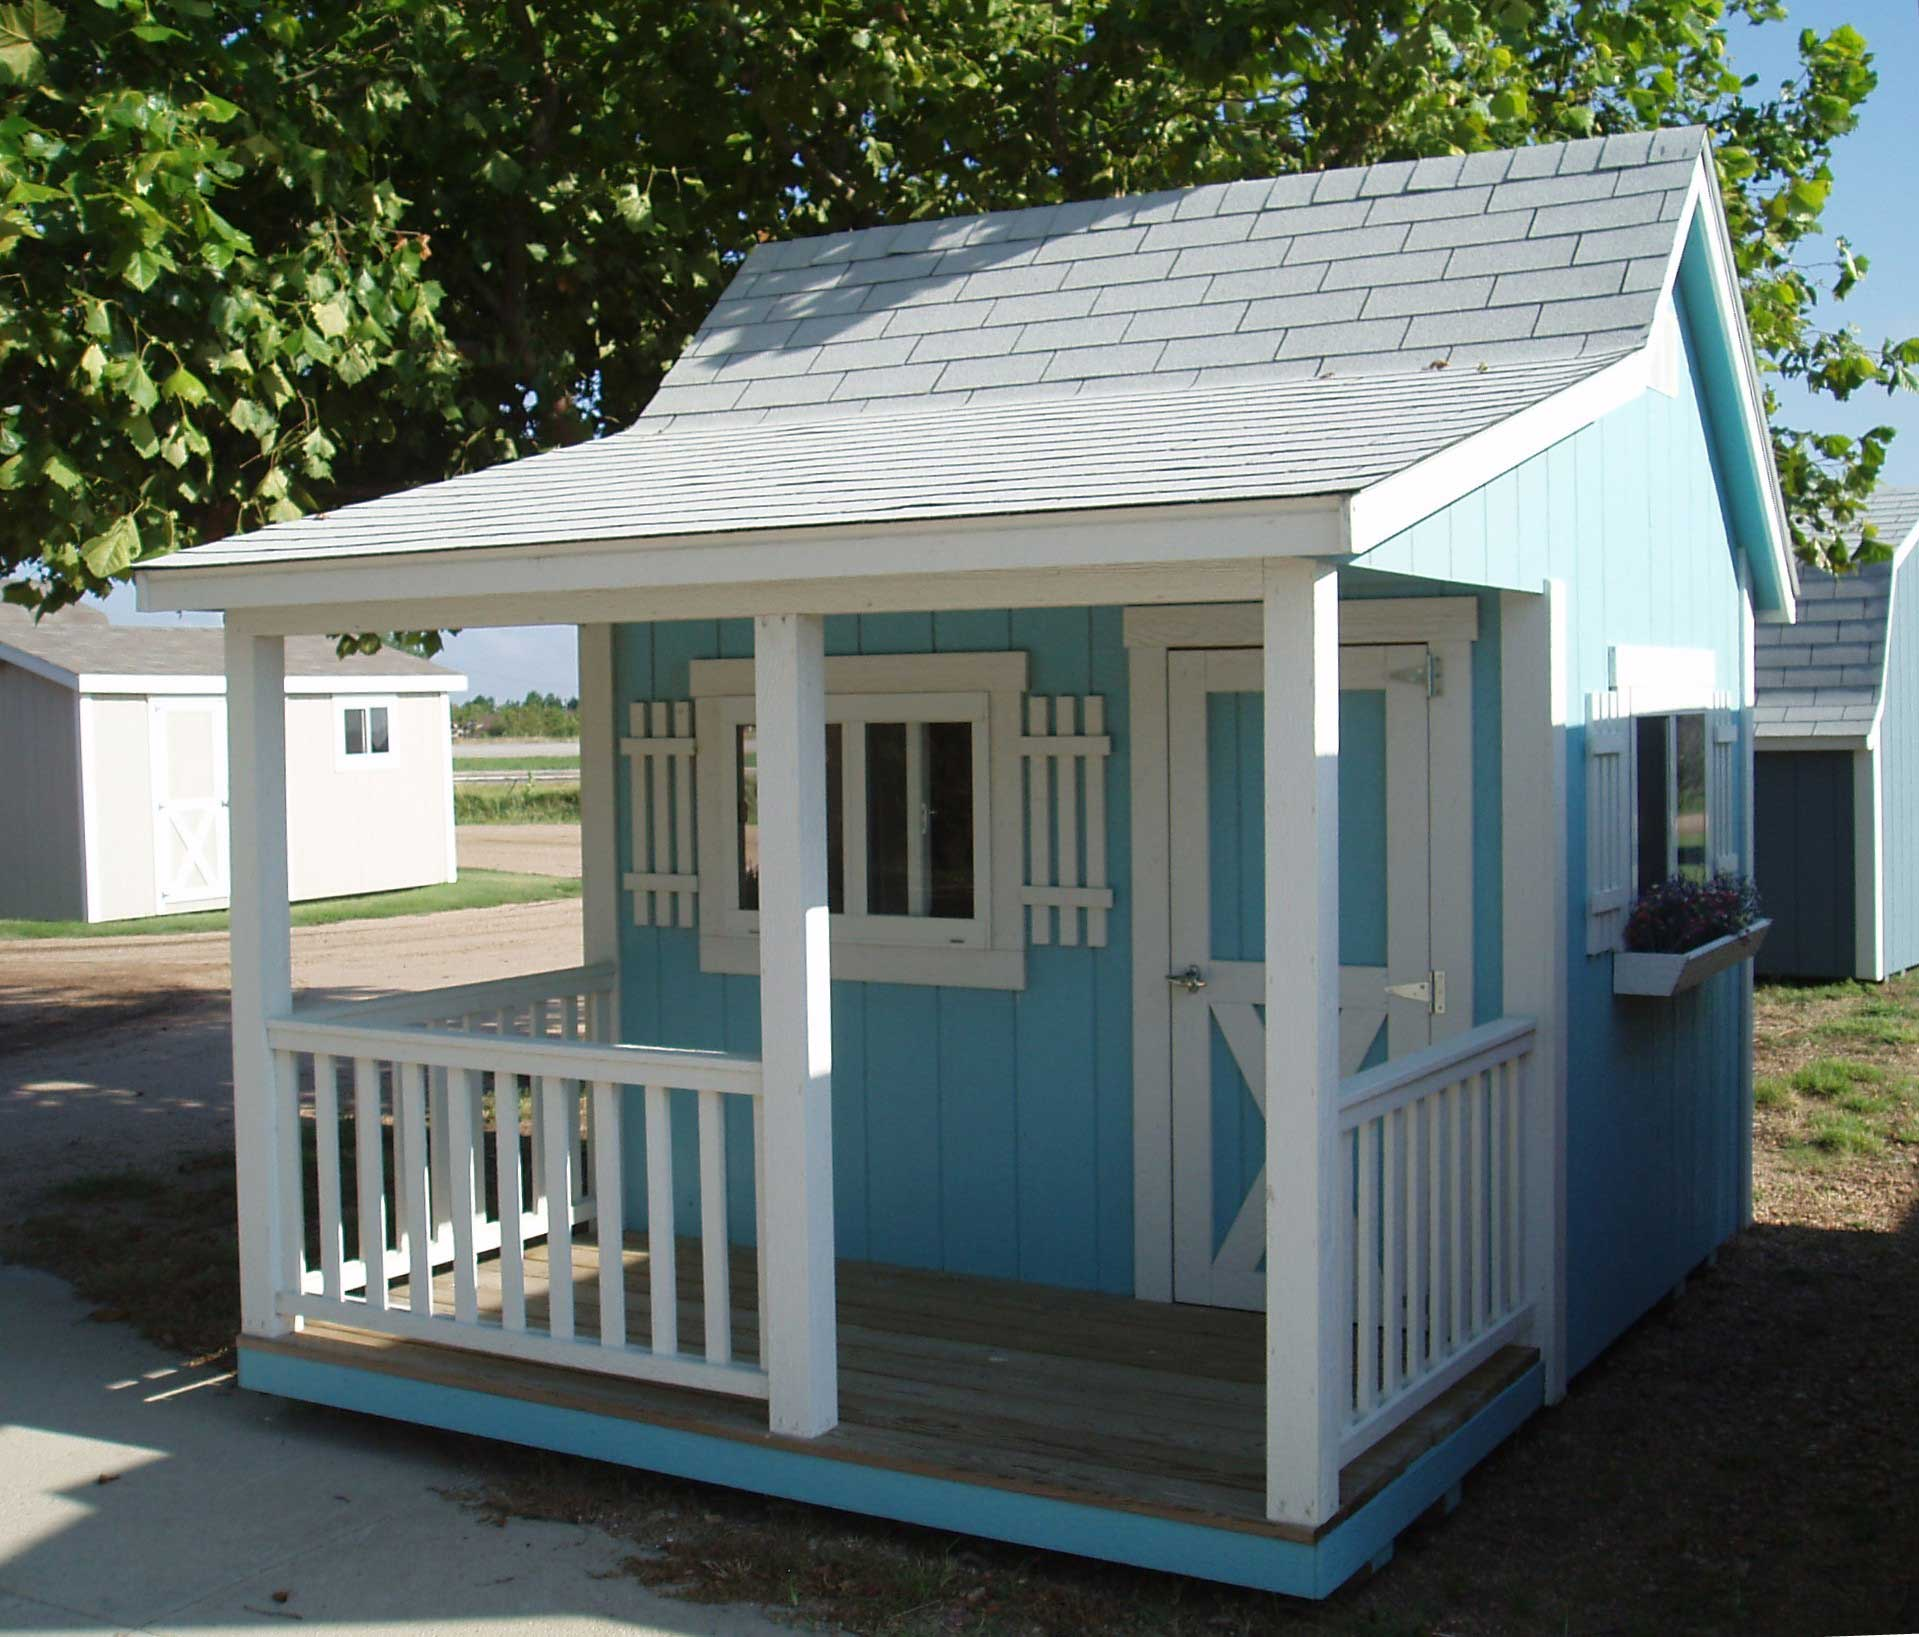 Sturdi Bilt Princess Playhouse